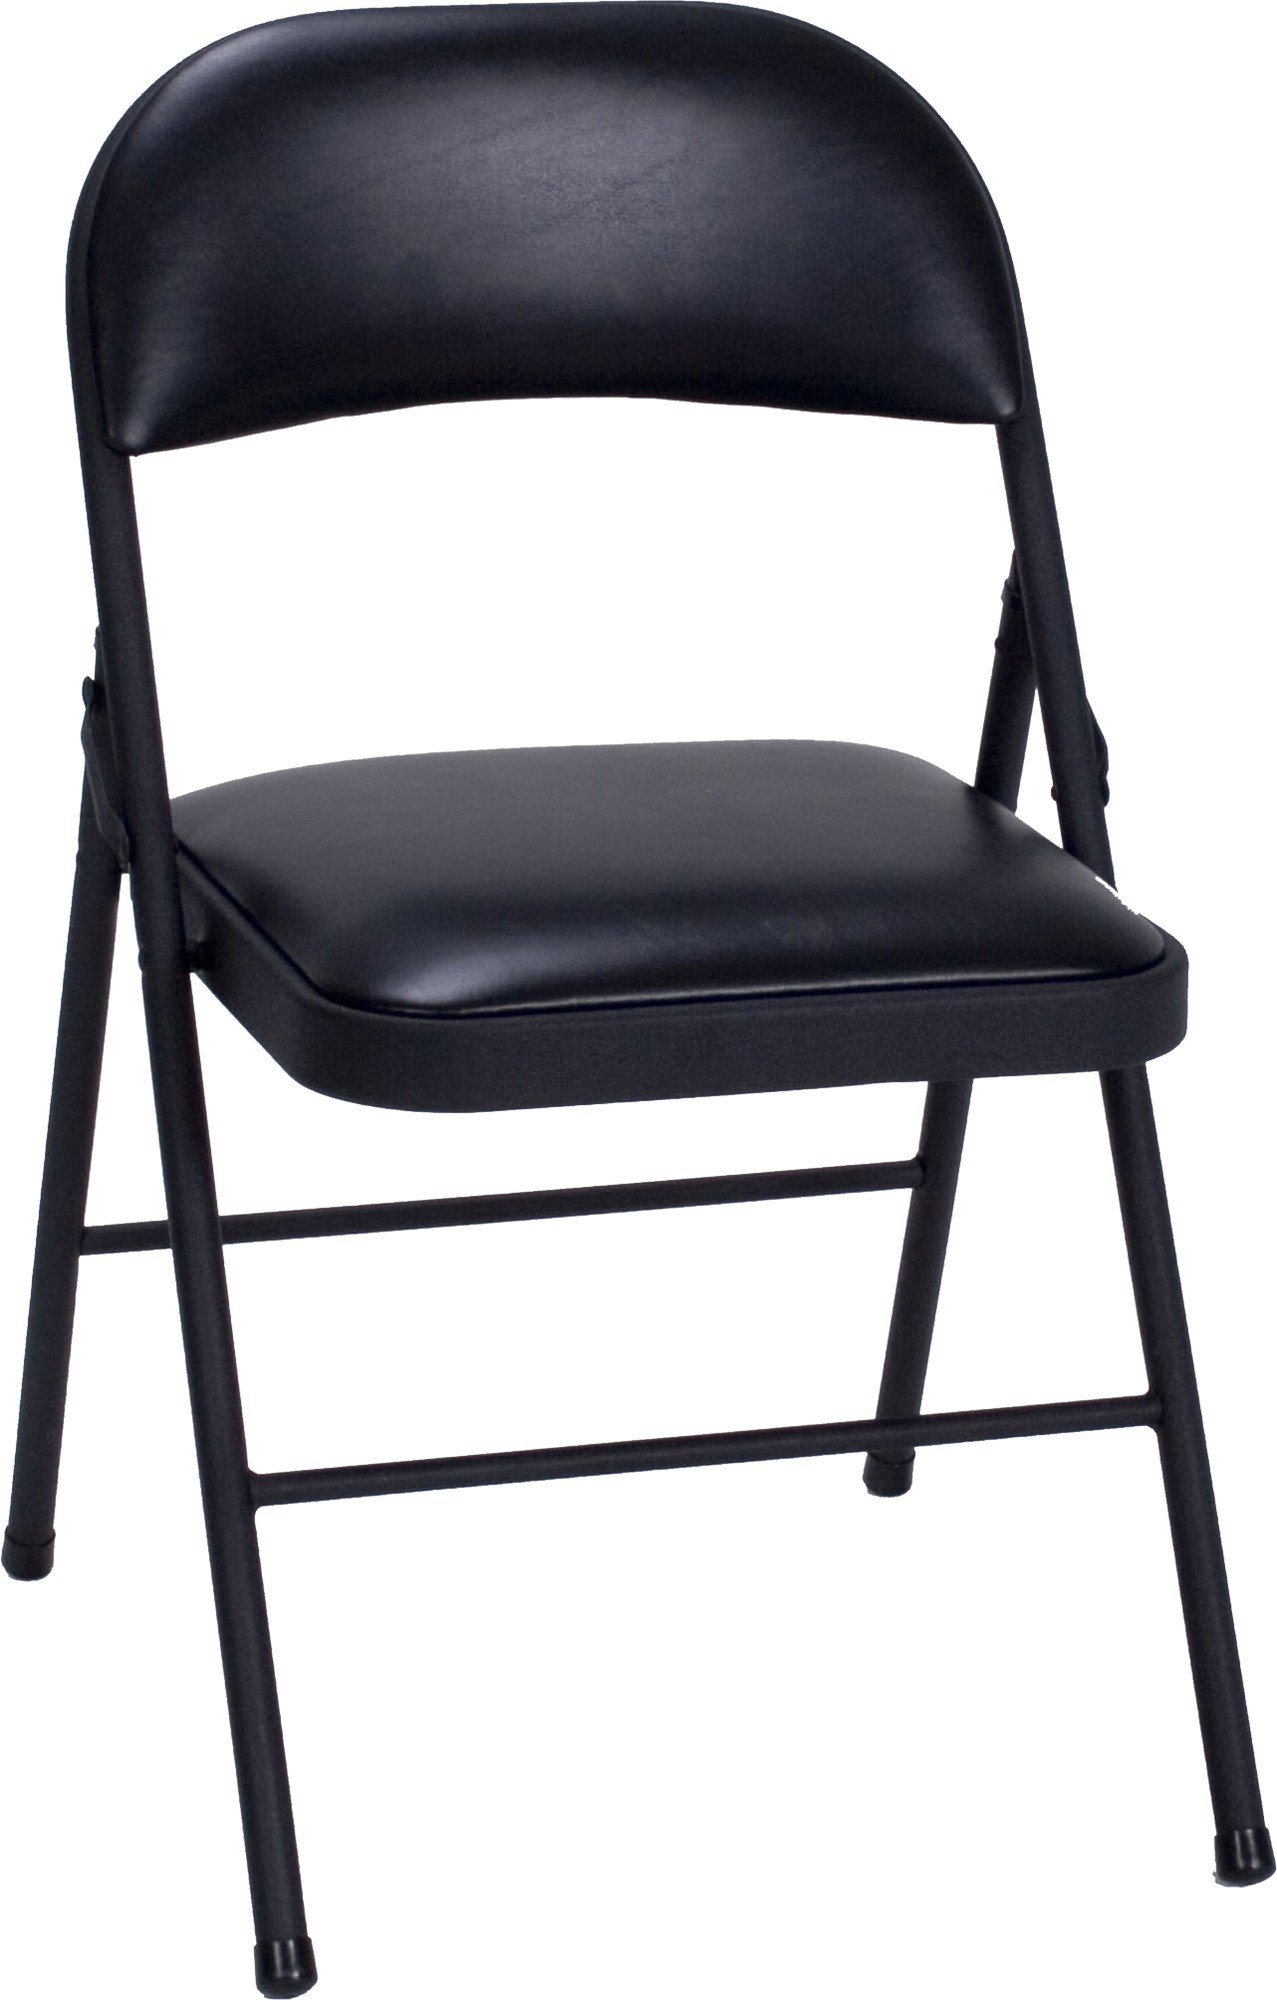 Cosco Vinyl 4-Pack Folding Chair, Black by Cosco